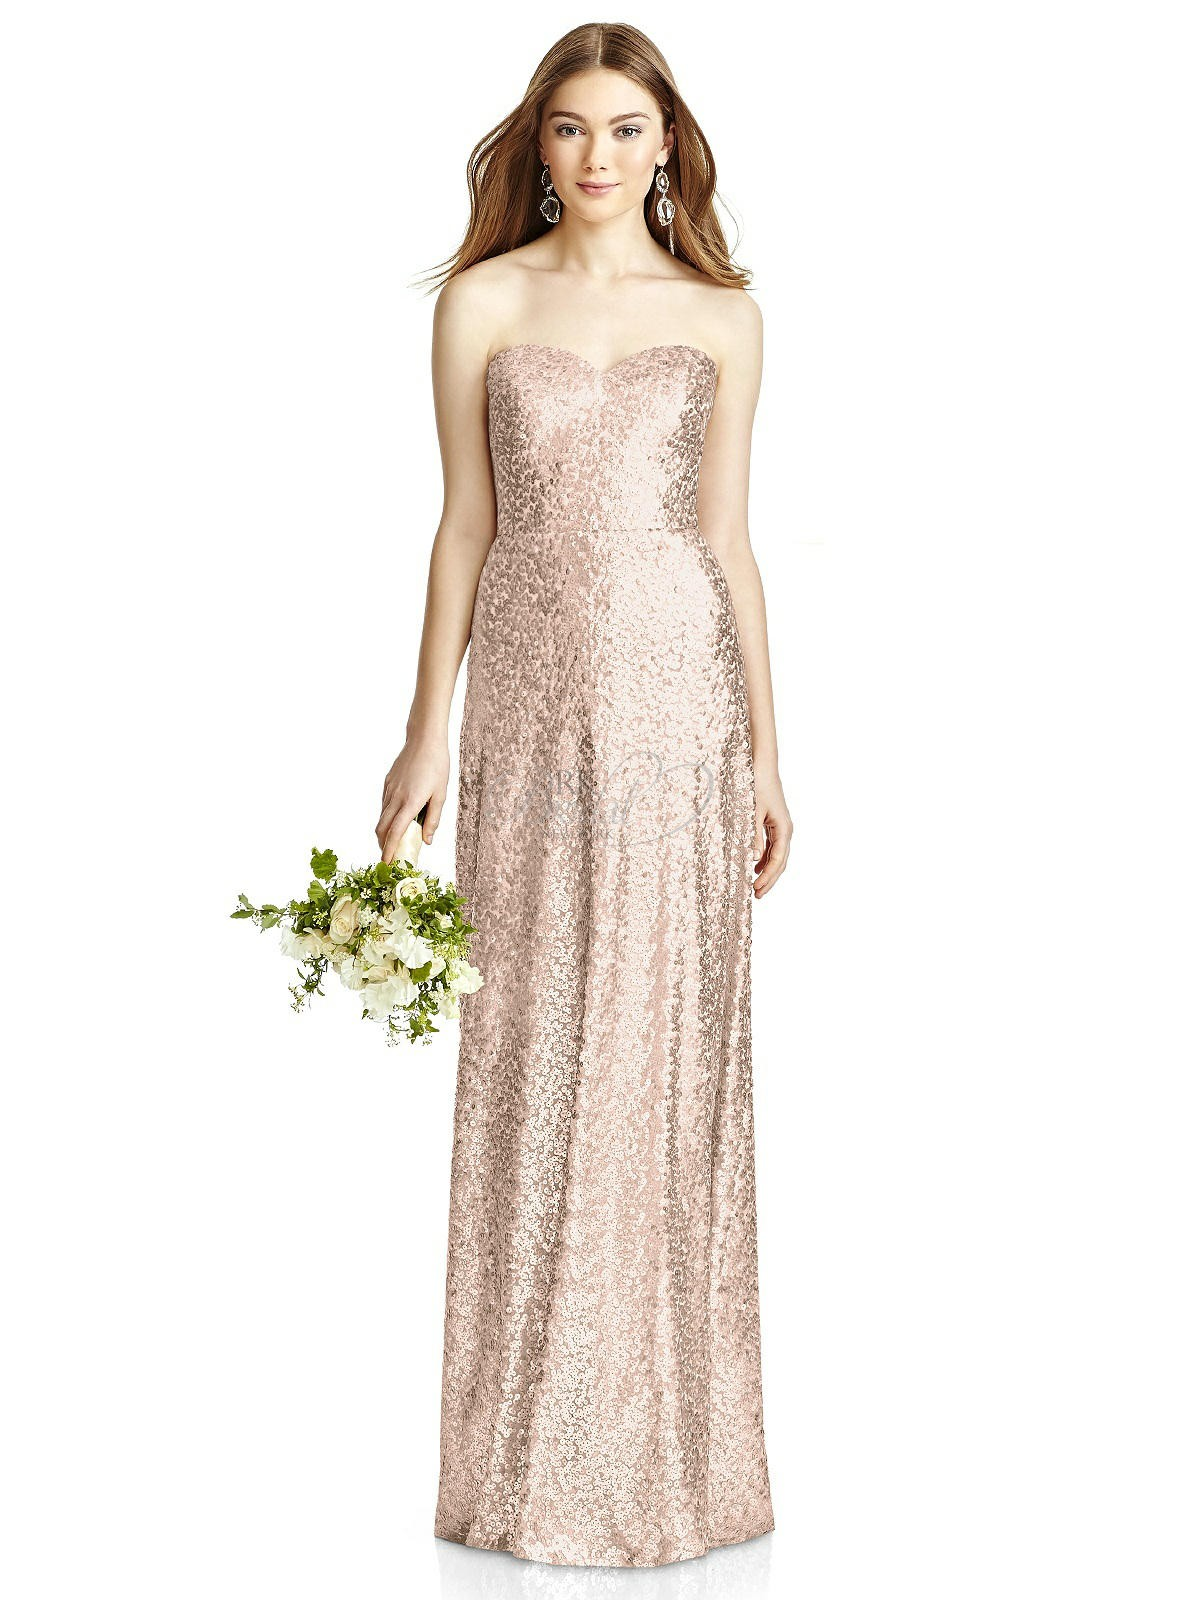 Dessy beautiful bridesmaid dresses at bliss bridal kelowna ombrellifo Image collections